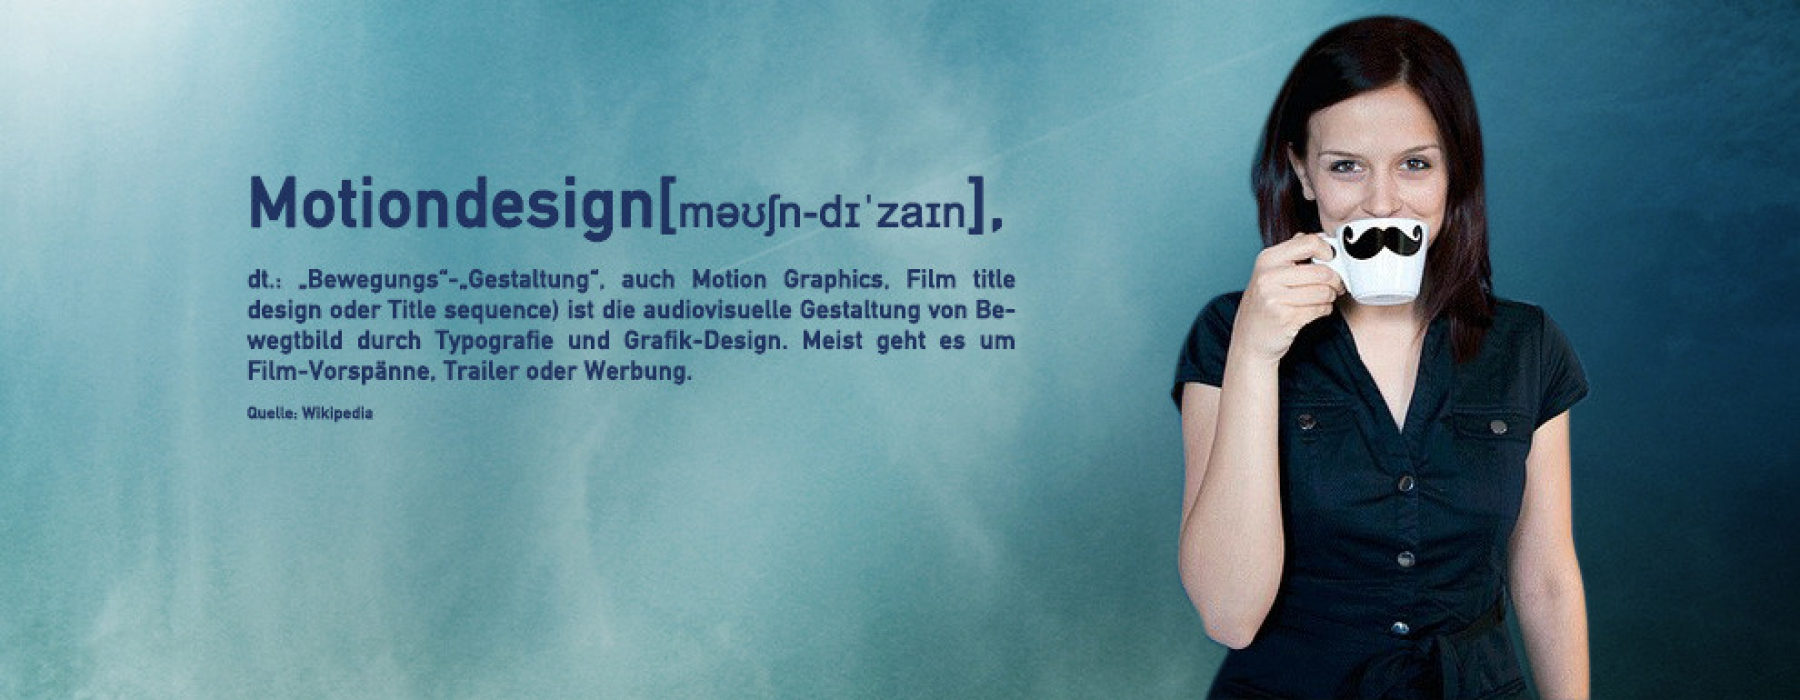 Webdesign Grafikdesign Motiondesign